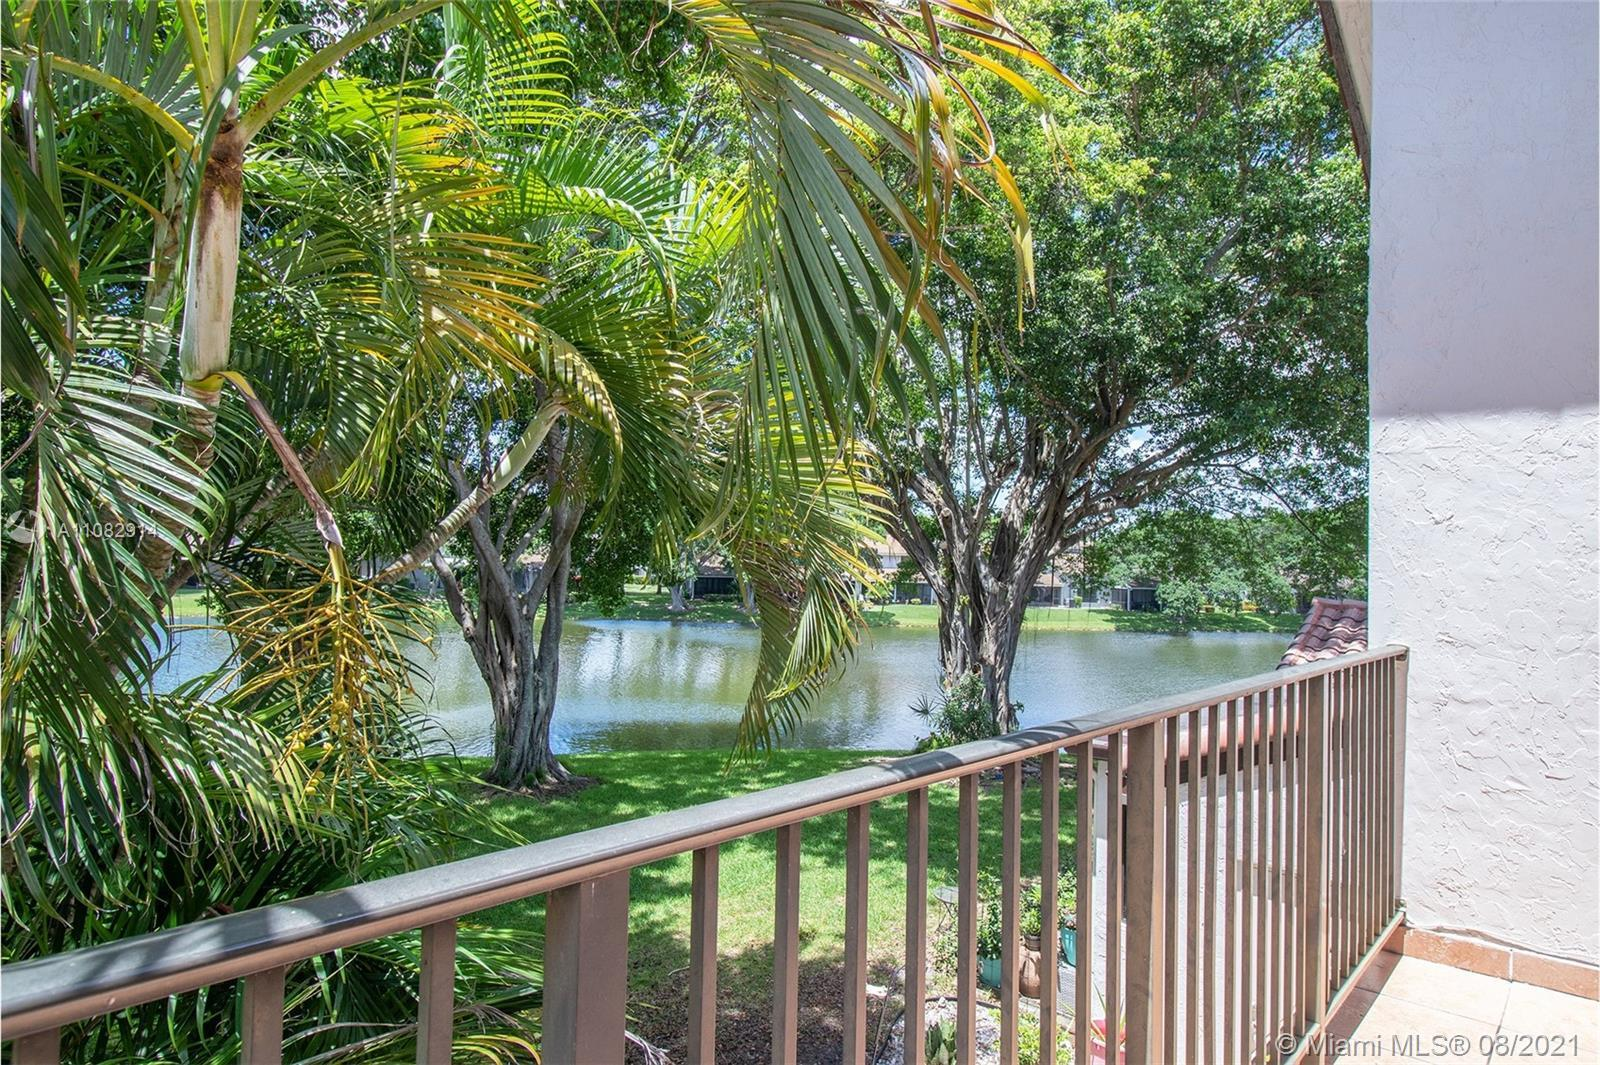 The Lakes Of Deer Creek. Large townhouse for sale,3 beds 3 1/2 baths, 1,800sf.hurricane impact windo